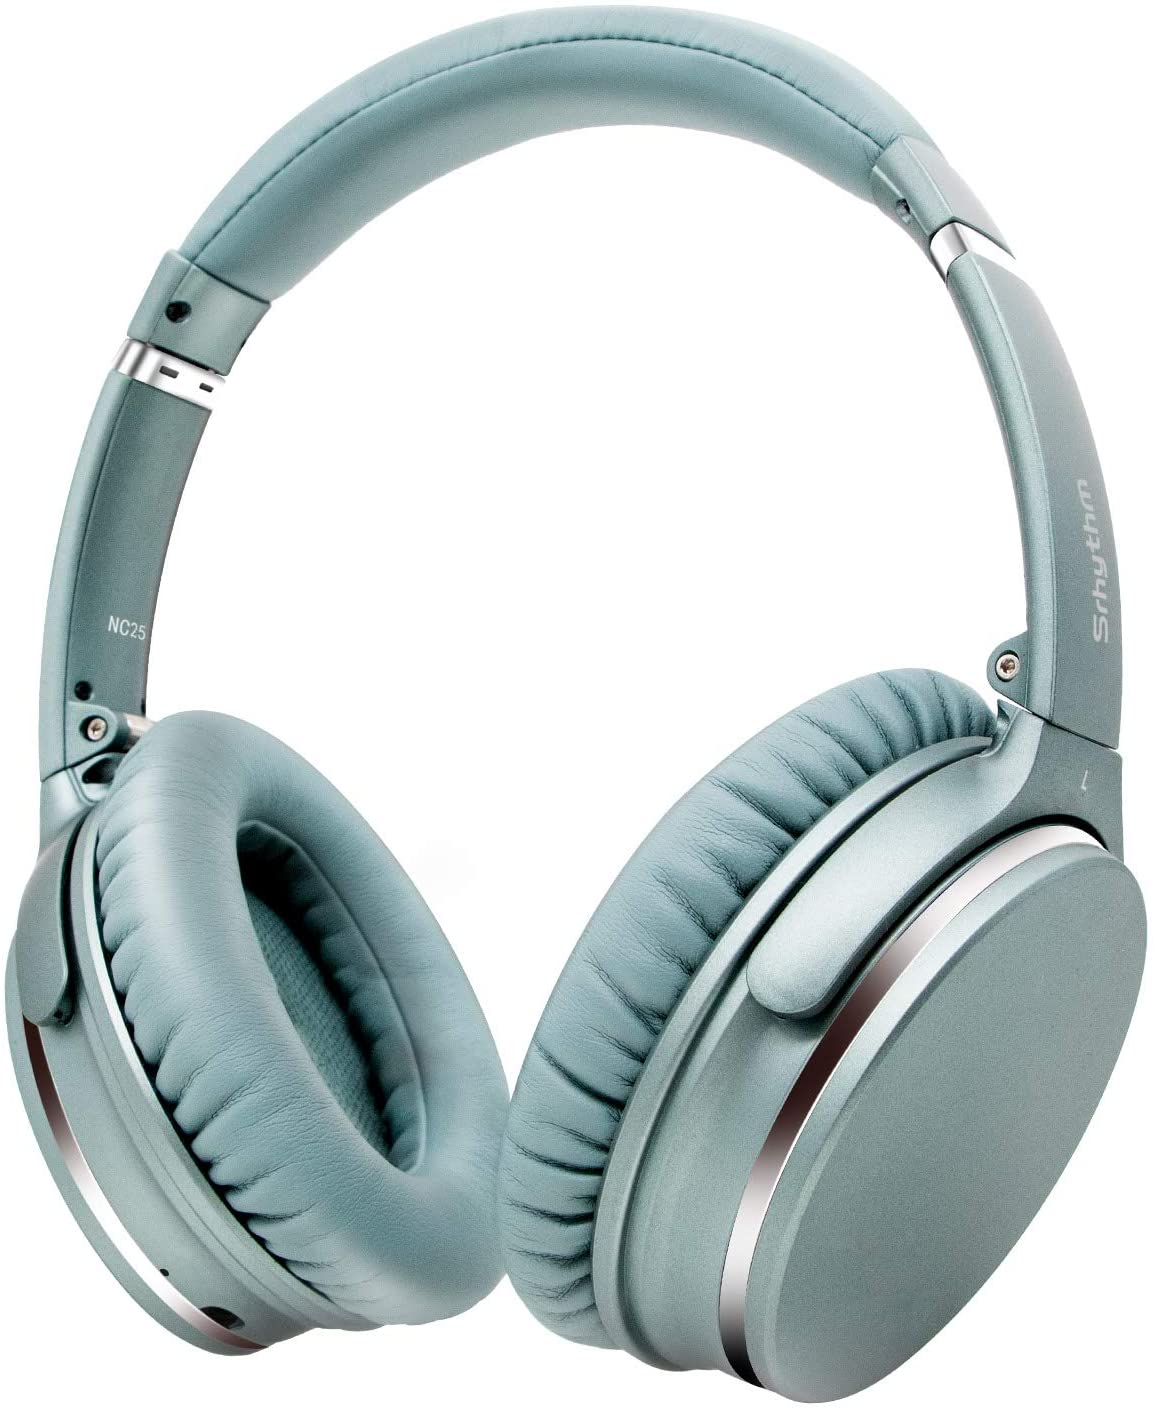 Wireless Active Noise-Cancelling Stereo Headphones Foldable,Srhythm NC25 Lightweight Headset Over-Ear with Hi-Fi,Built-In Mic,40mm HD Driver,Protein Leather Earpads (Mint Green)